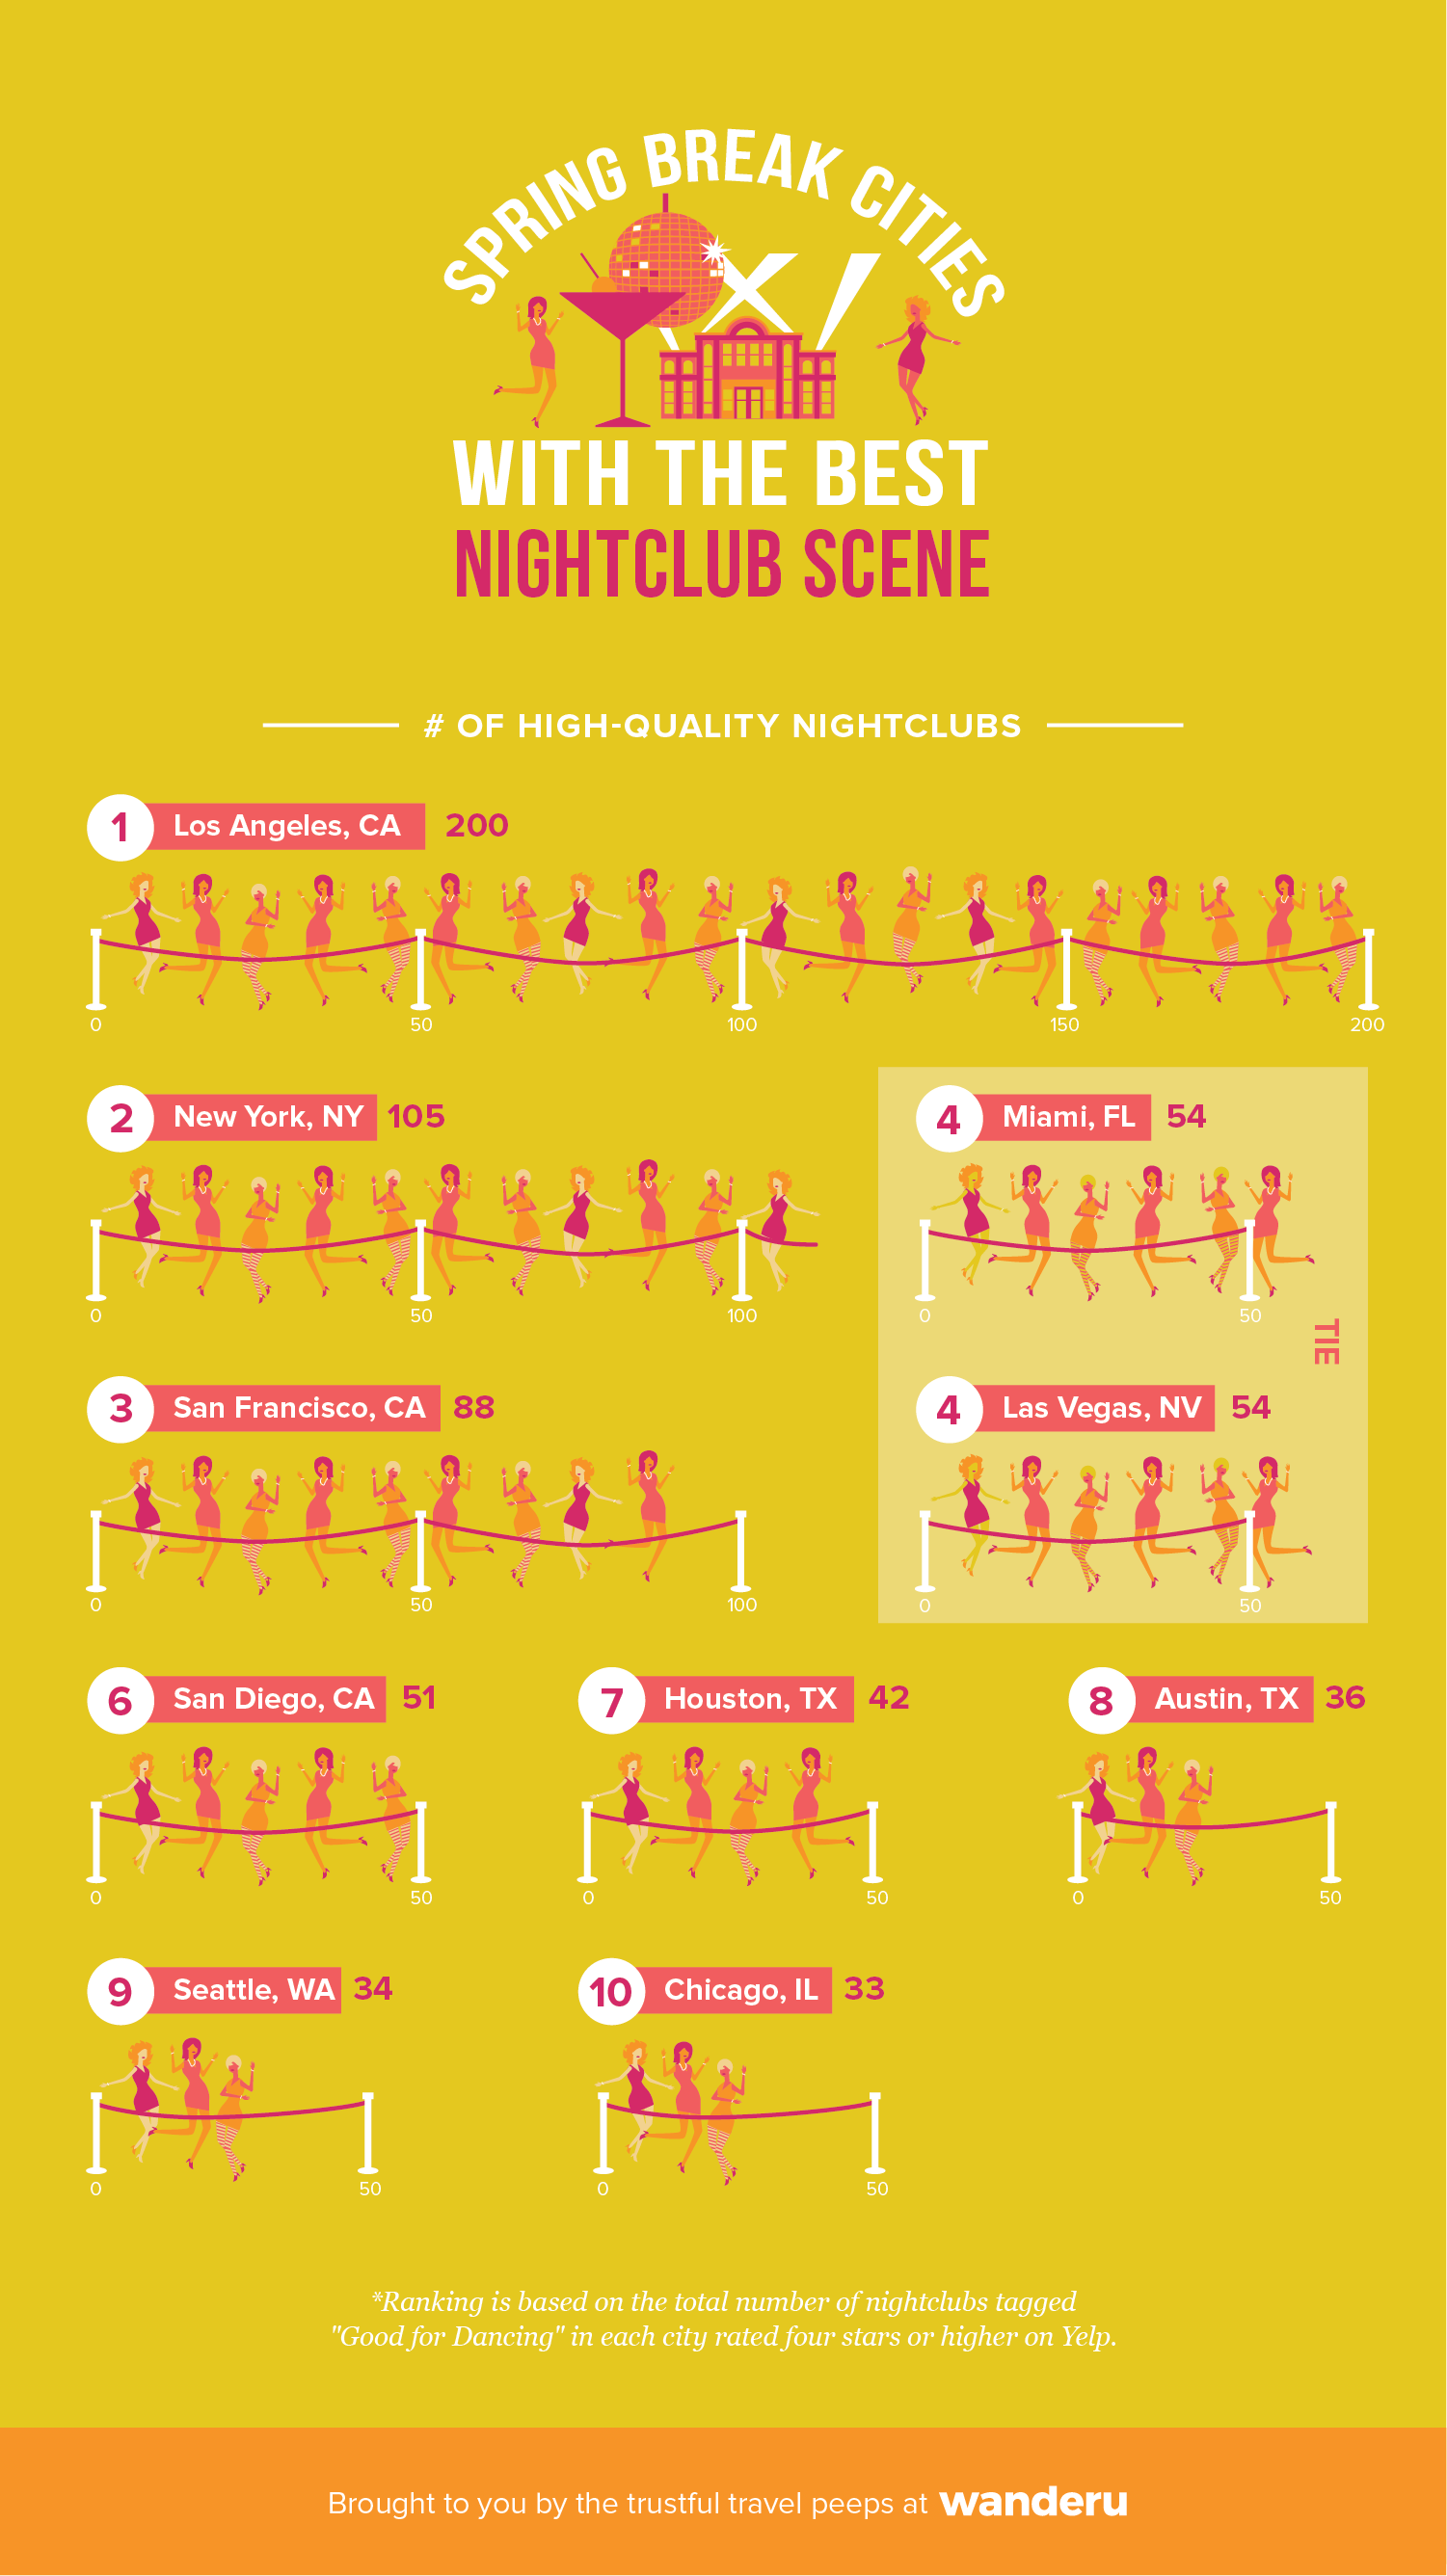 Infographic depicts the top 10 cities with the most high-quality (4 stars or higher on Yelp) nightclubs in the U.S.